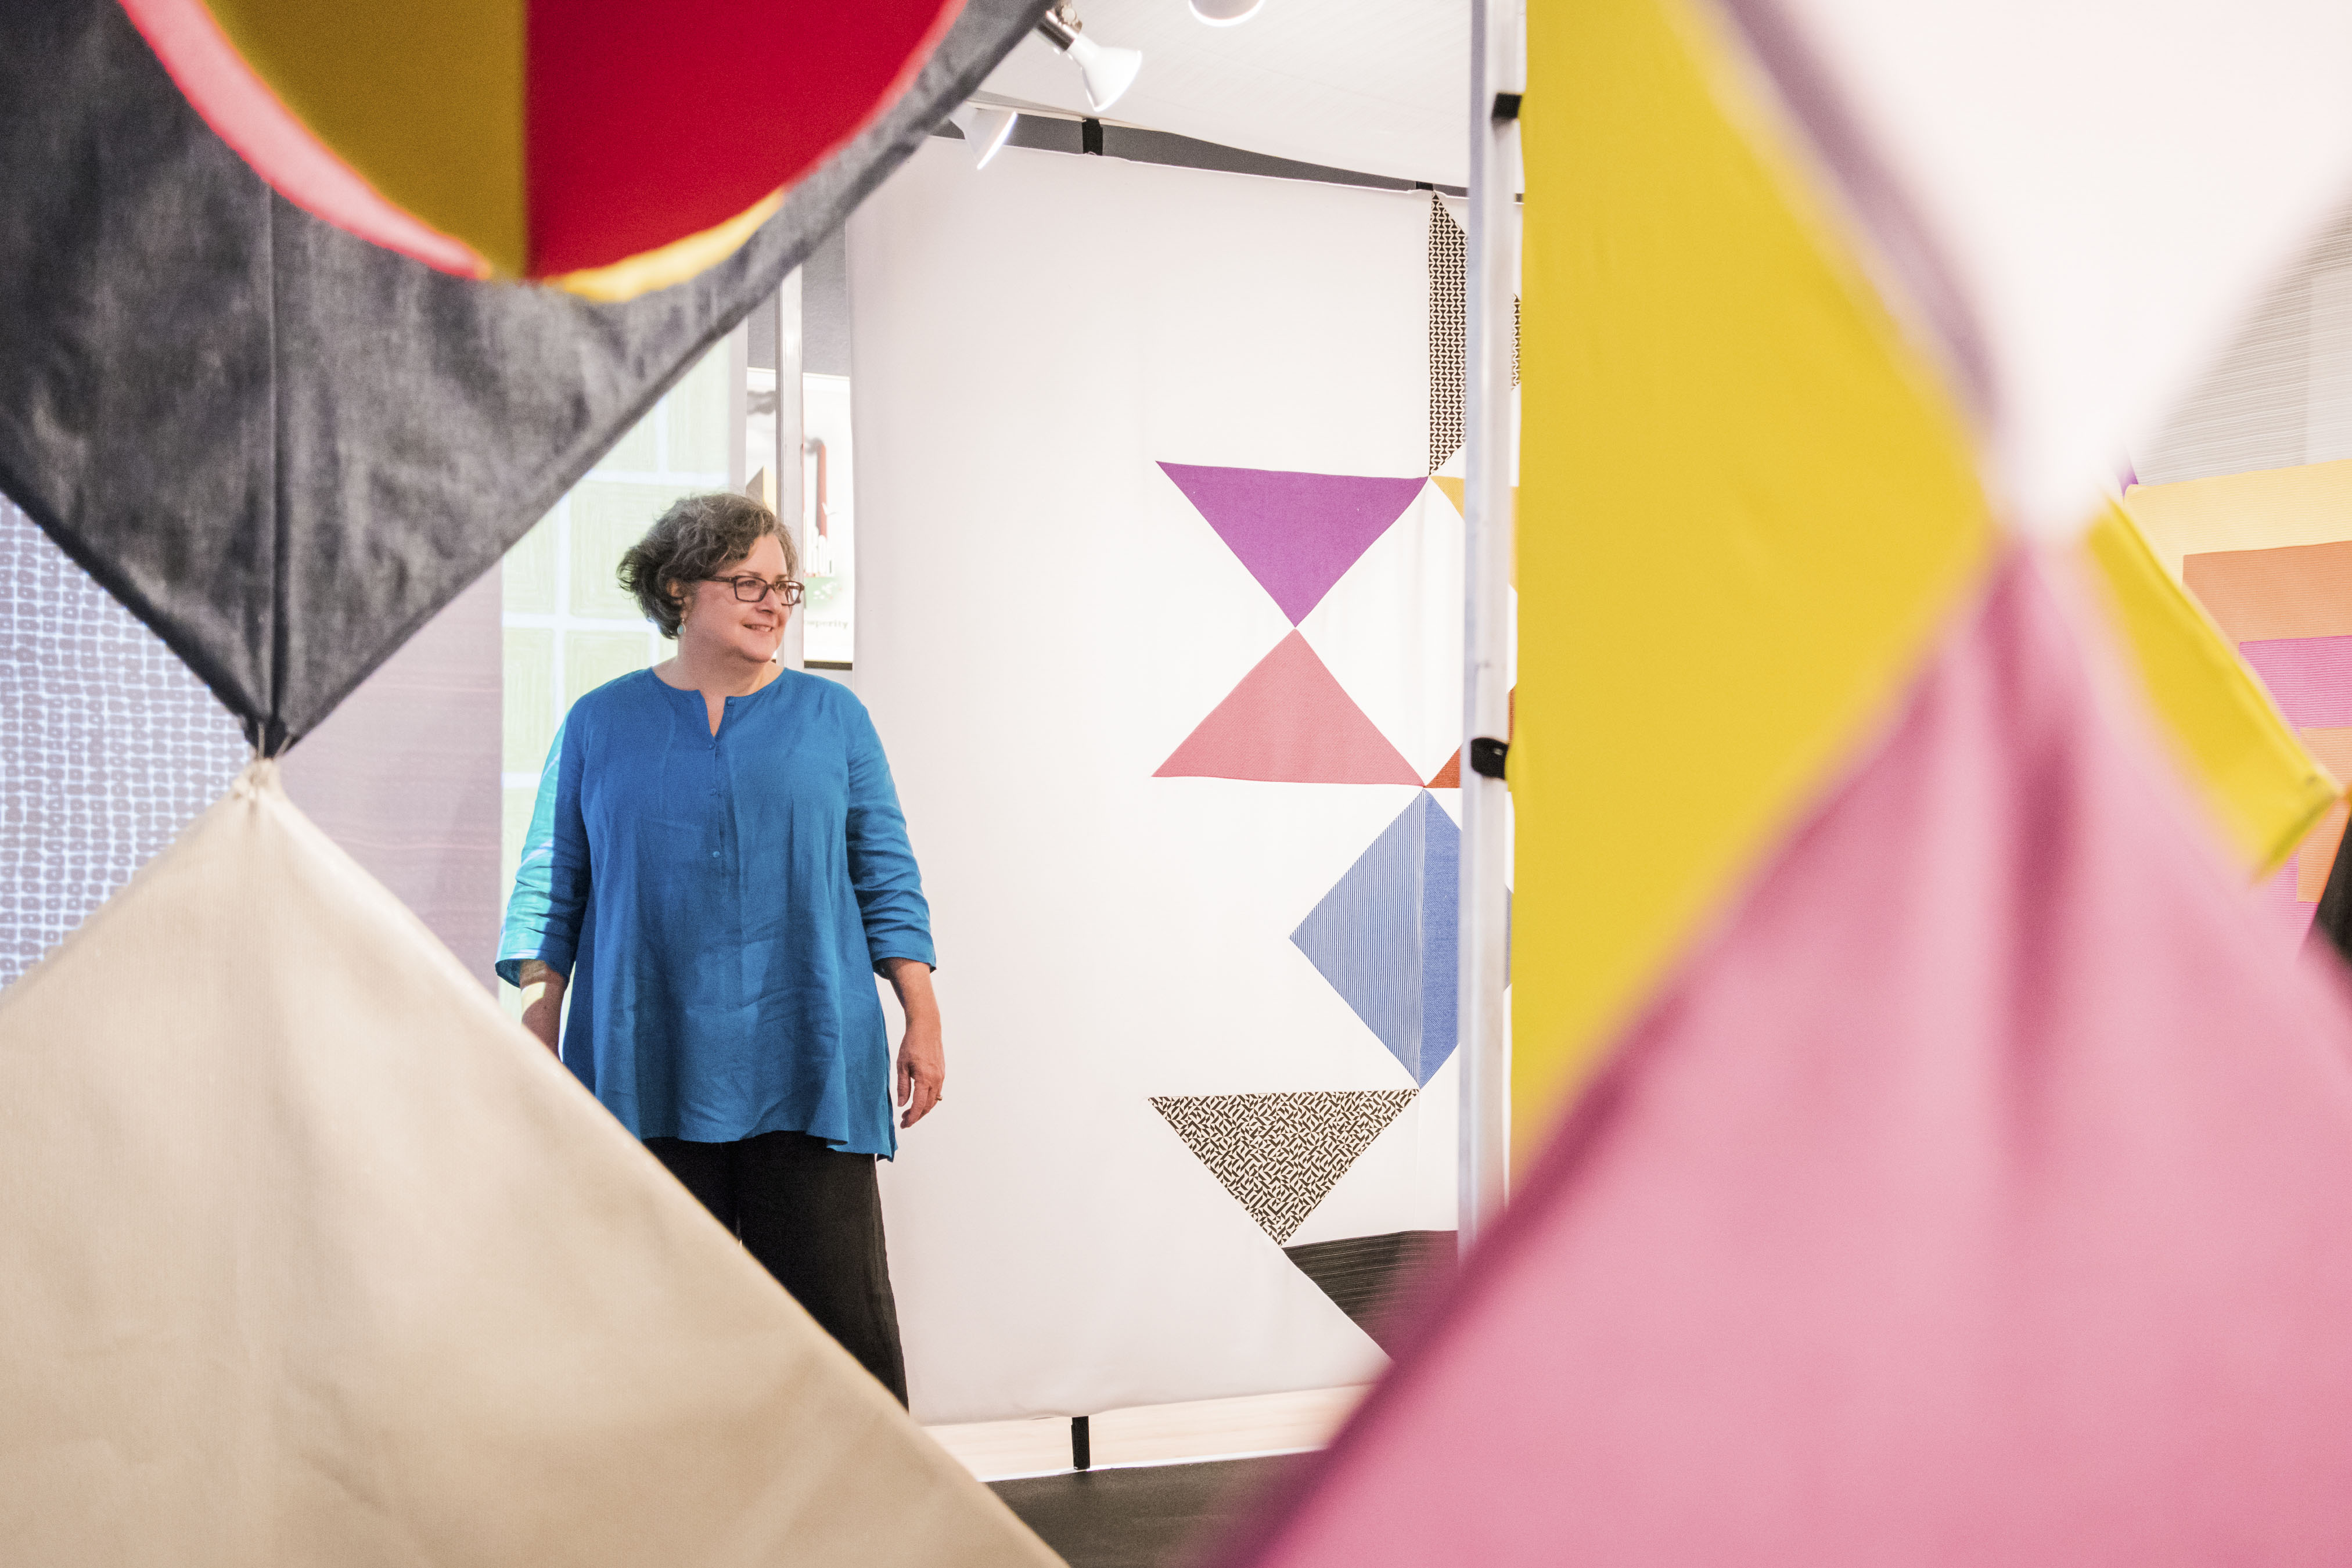 Woman framed by fabric from art exhibit